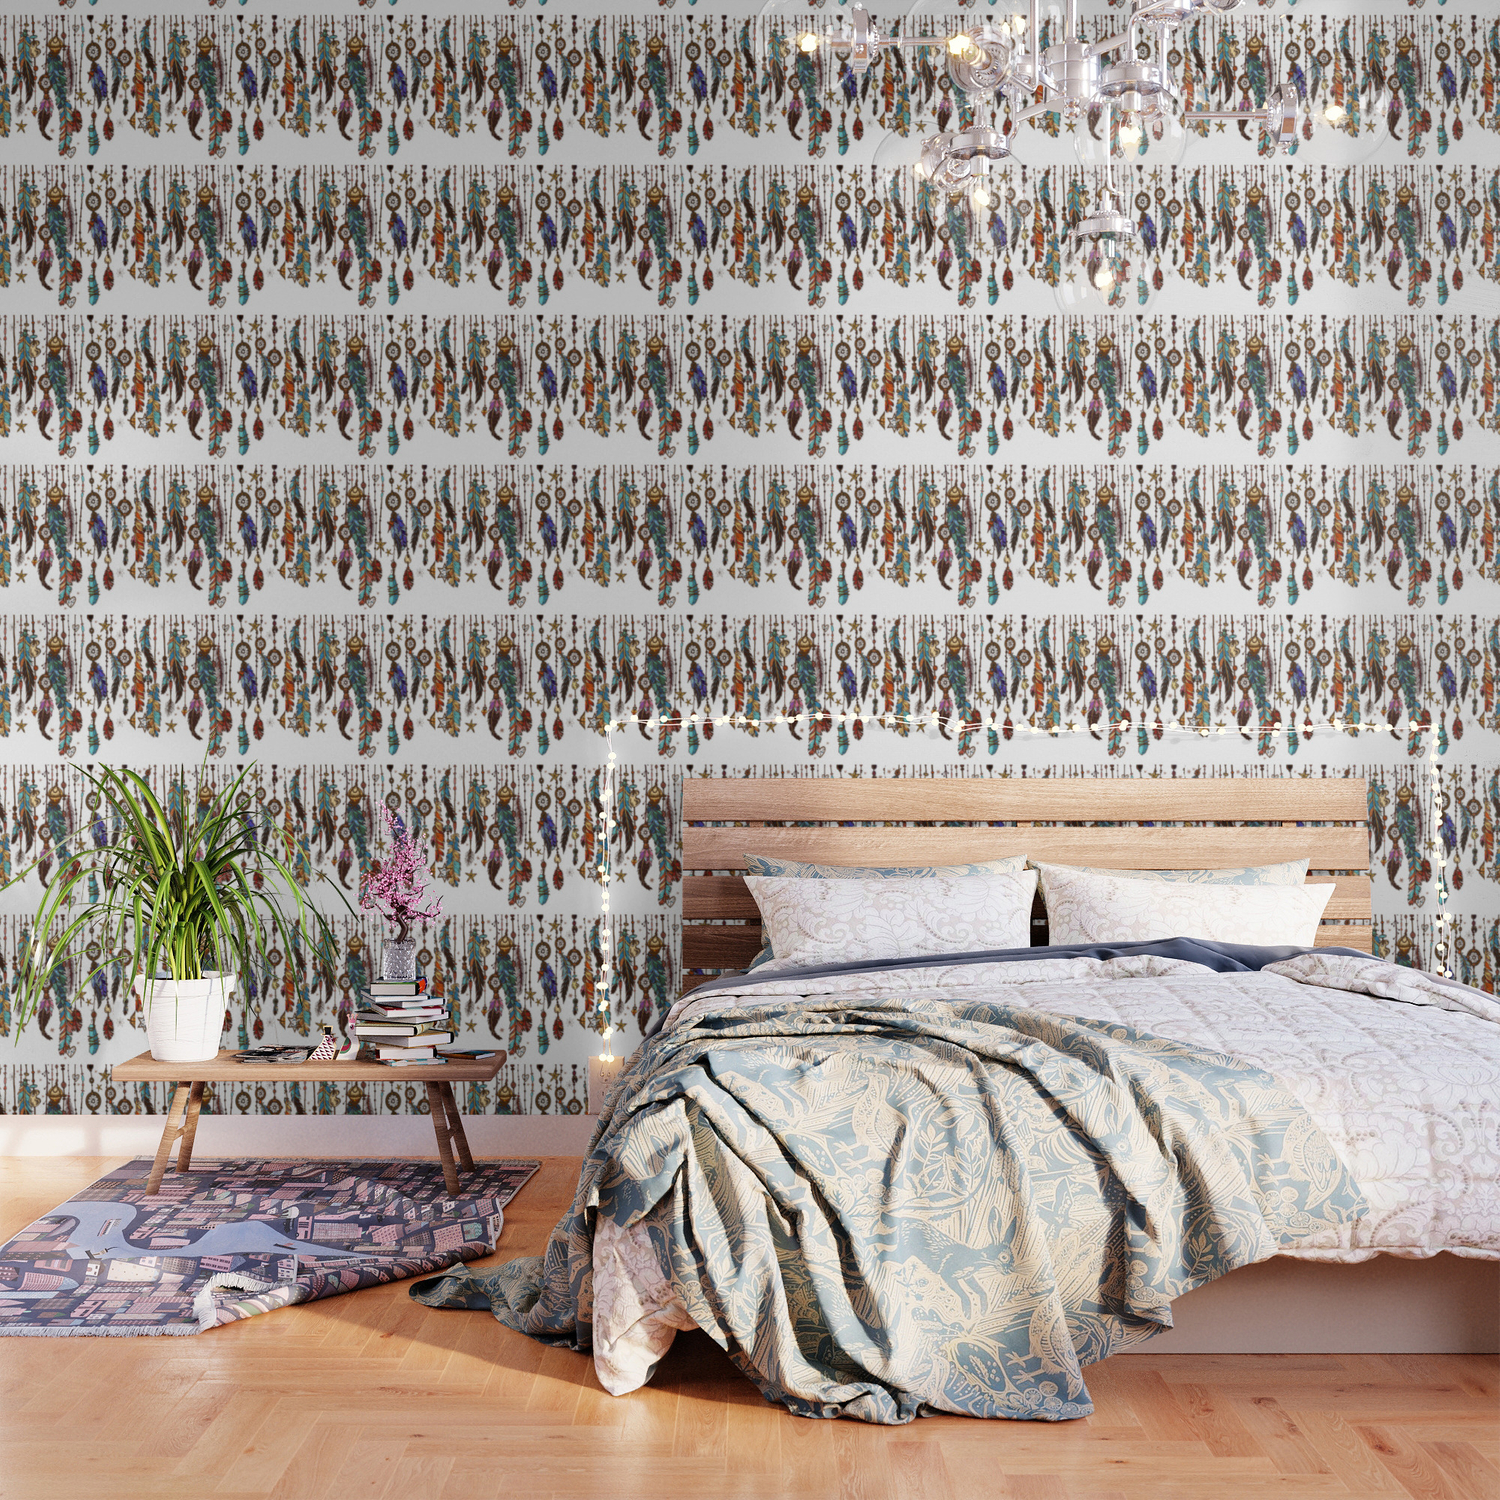 Feathers and crystals in aztec style Wallpaper by christineiris 1500x1500